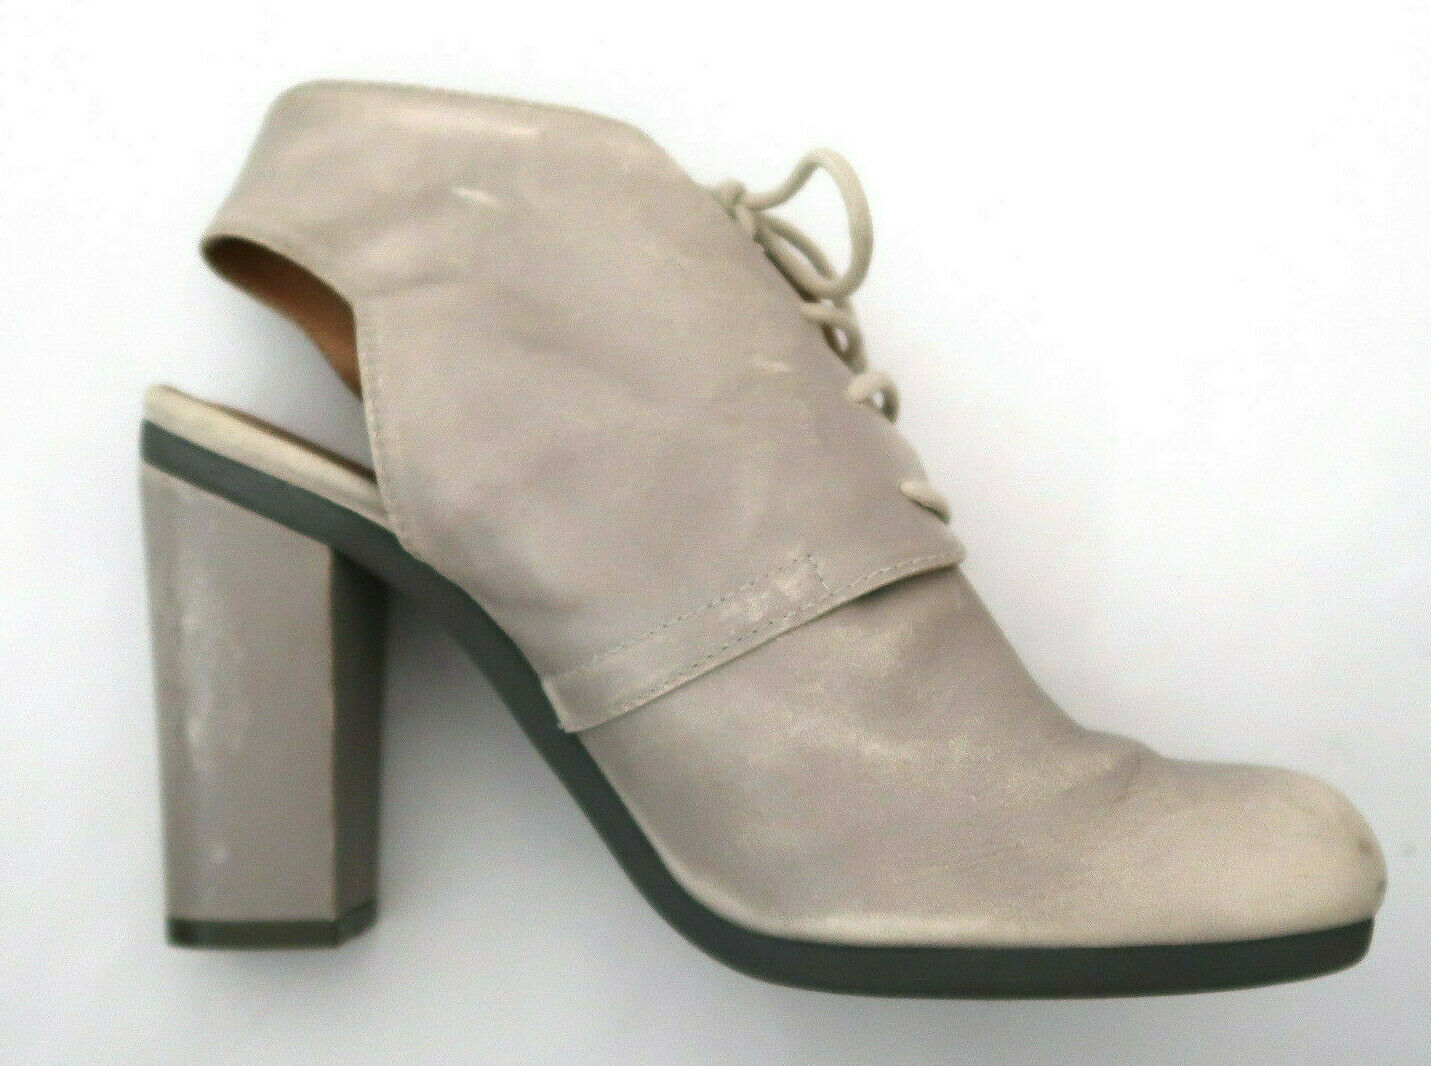 MM6 MARTIN MARGIELA distressed leather bootie sho… - image 5